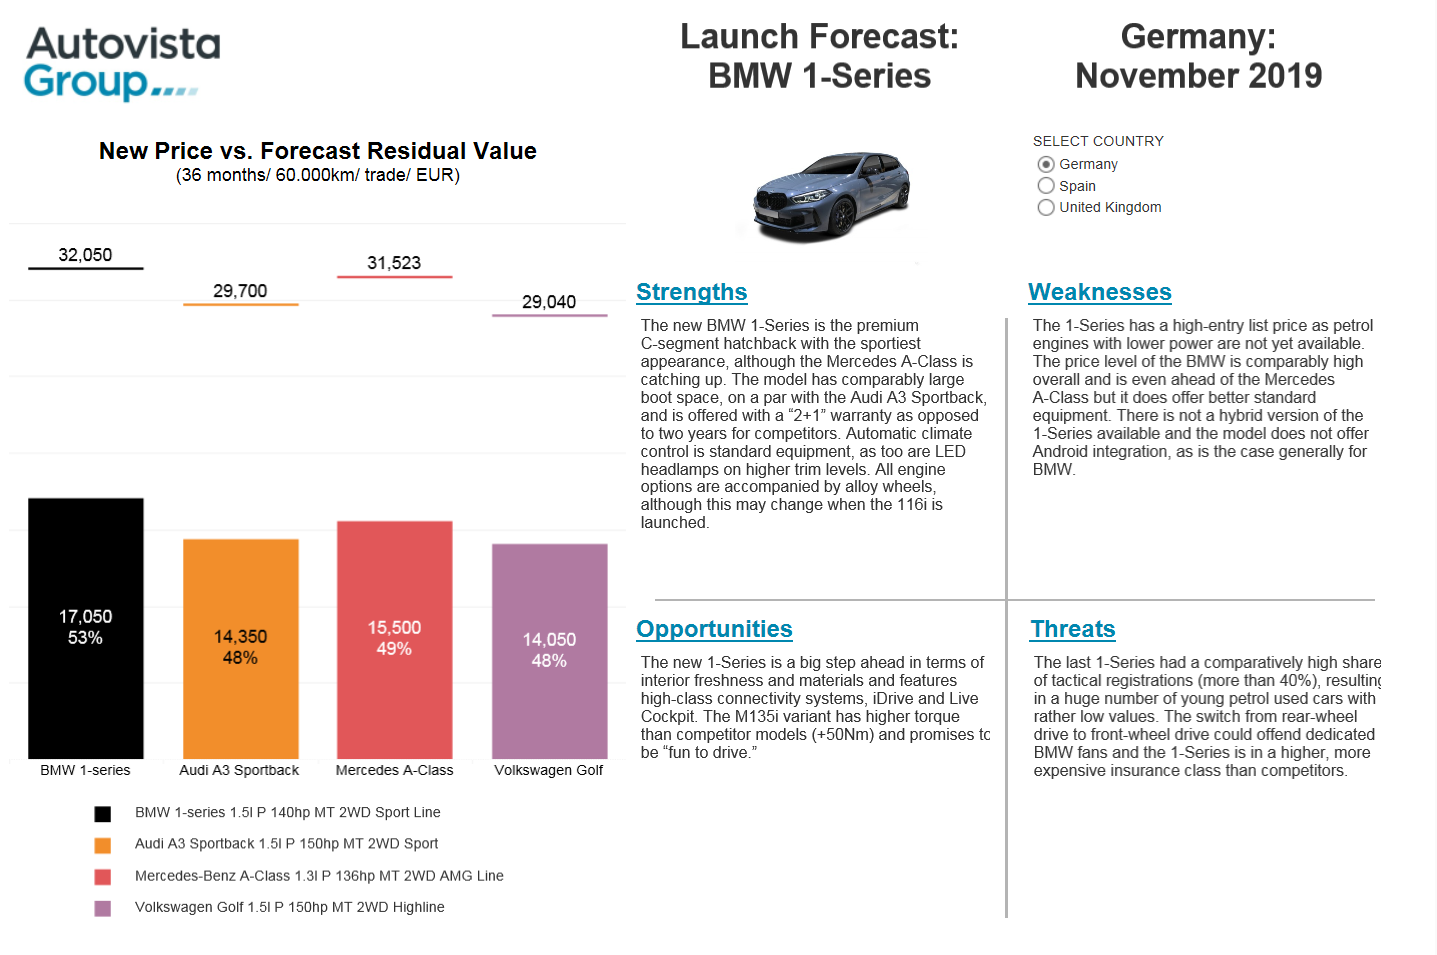 BMW 1-Series Launch Forecast